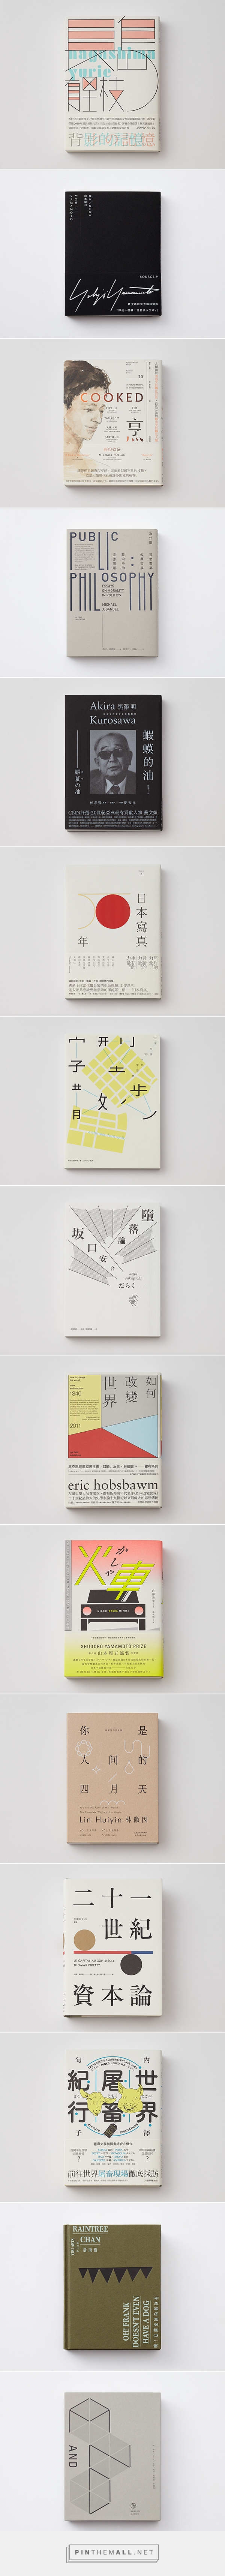 王志弘 - Selection of Book Designs, 2014